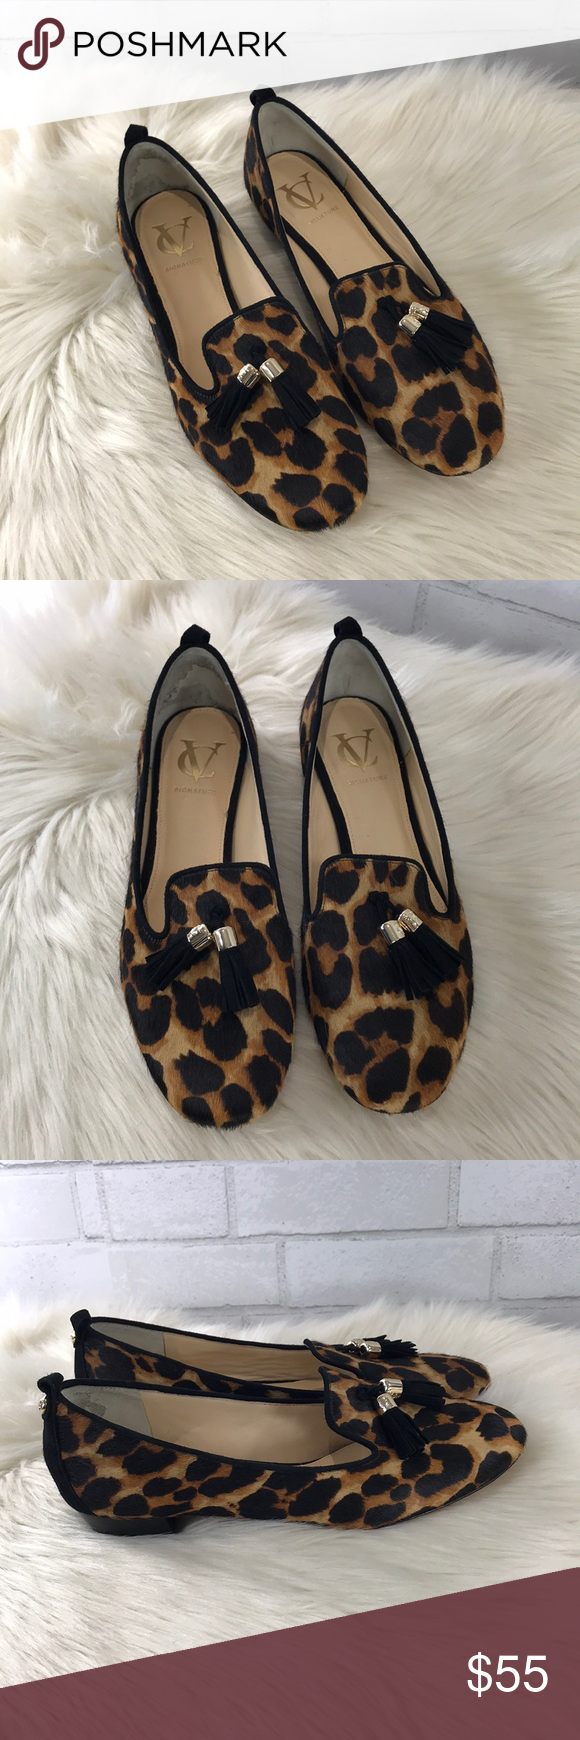 f3275015bfd8 Vince Camuto Calf Hair Leopard Print Tassel Flats This is a pair of VC  Signature by